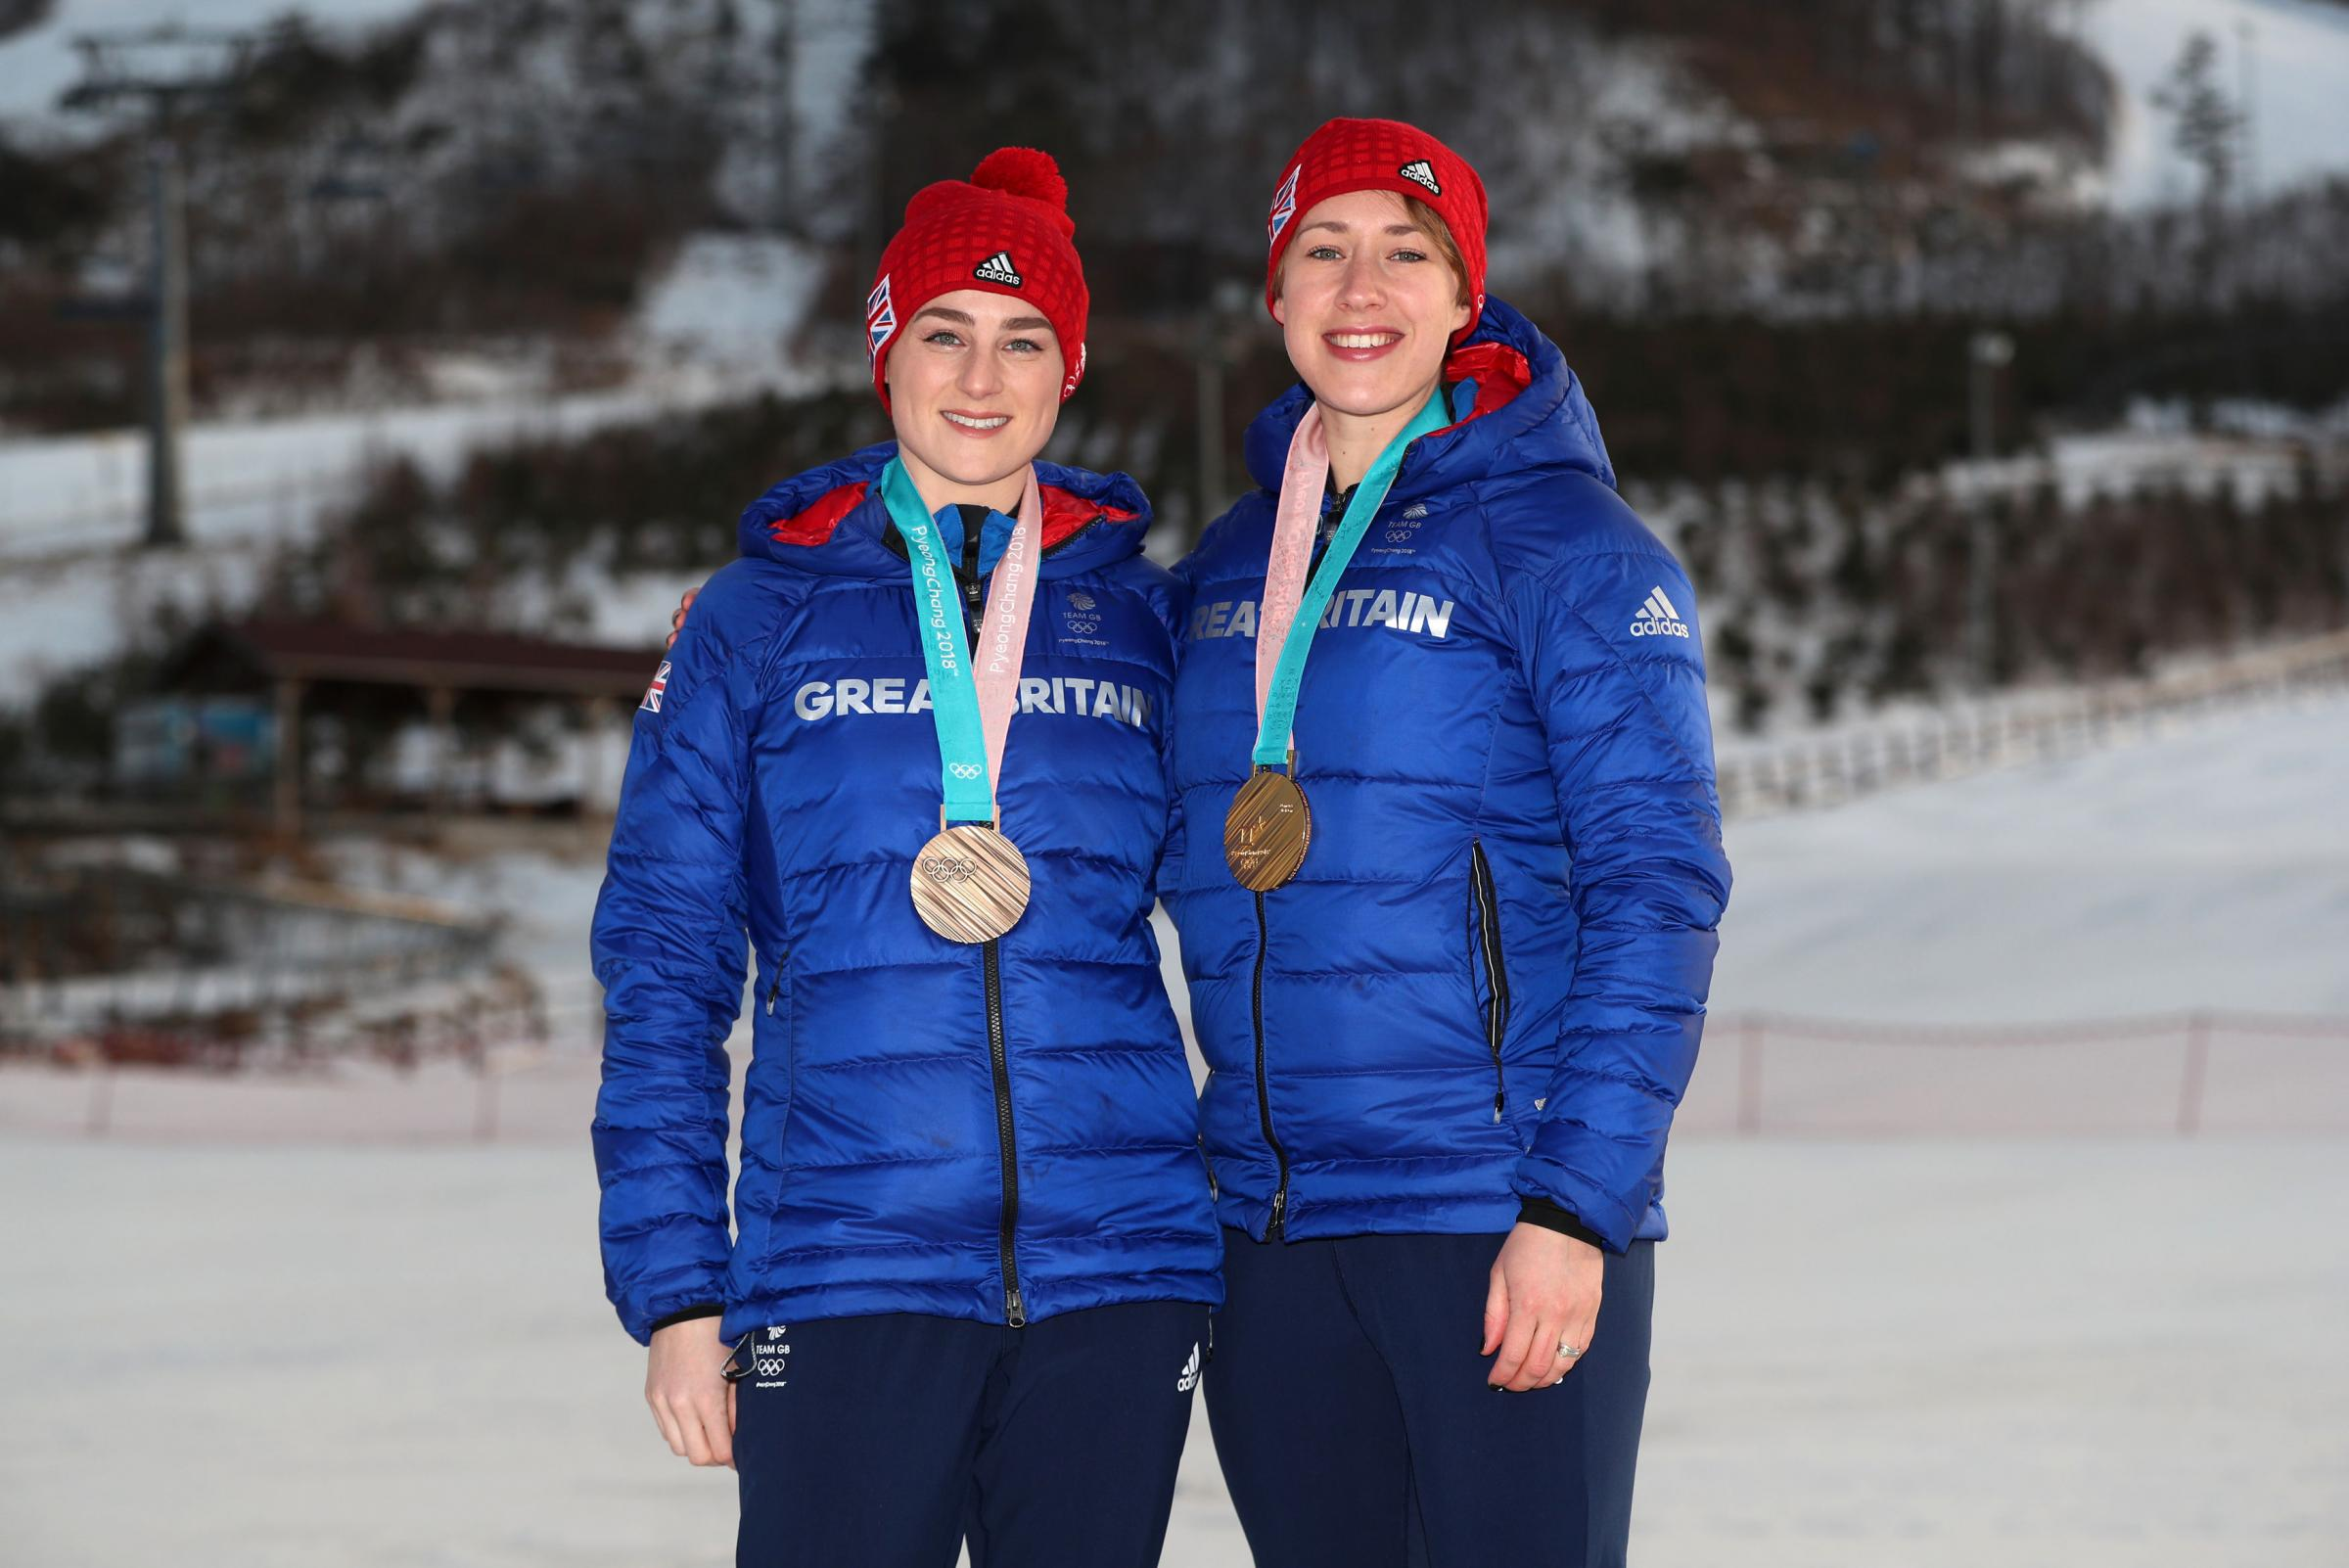 Melksham-based Laura Deas (left) and Great Britain teammate Lizzy Yarnold show off their bronze and gold medals respectively from the Winter Olympics in Pyeongchang